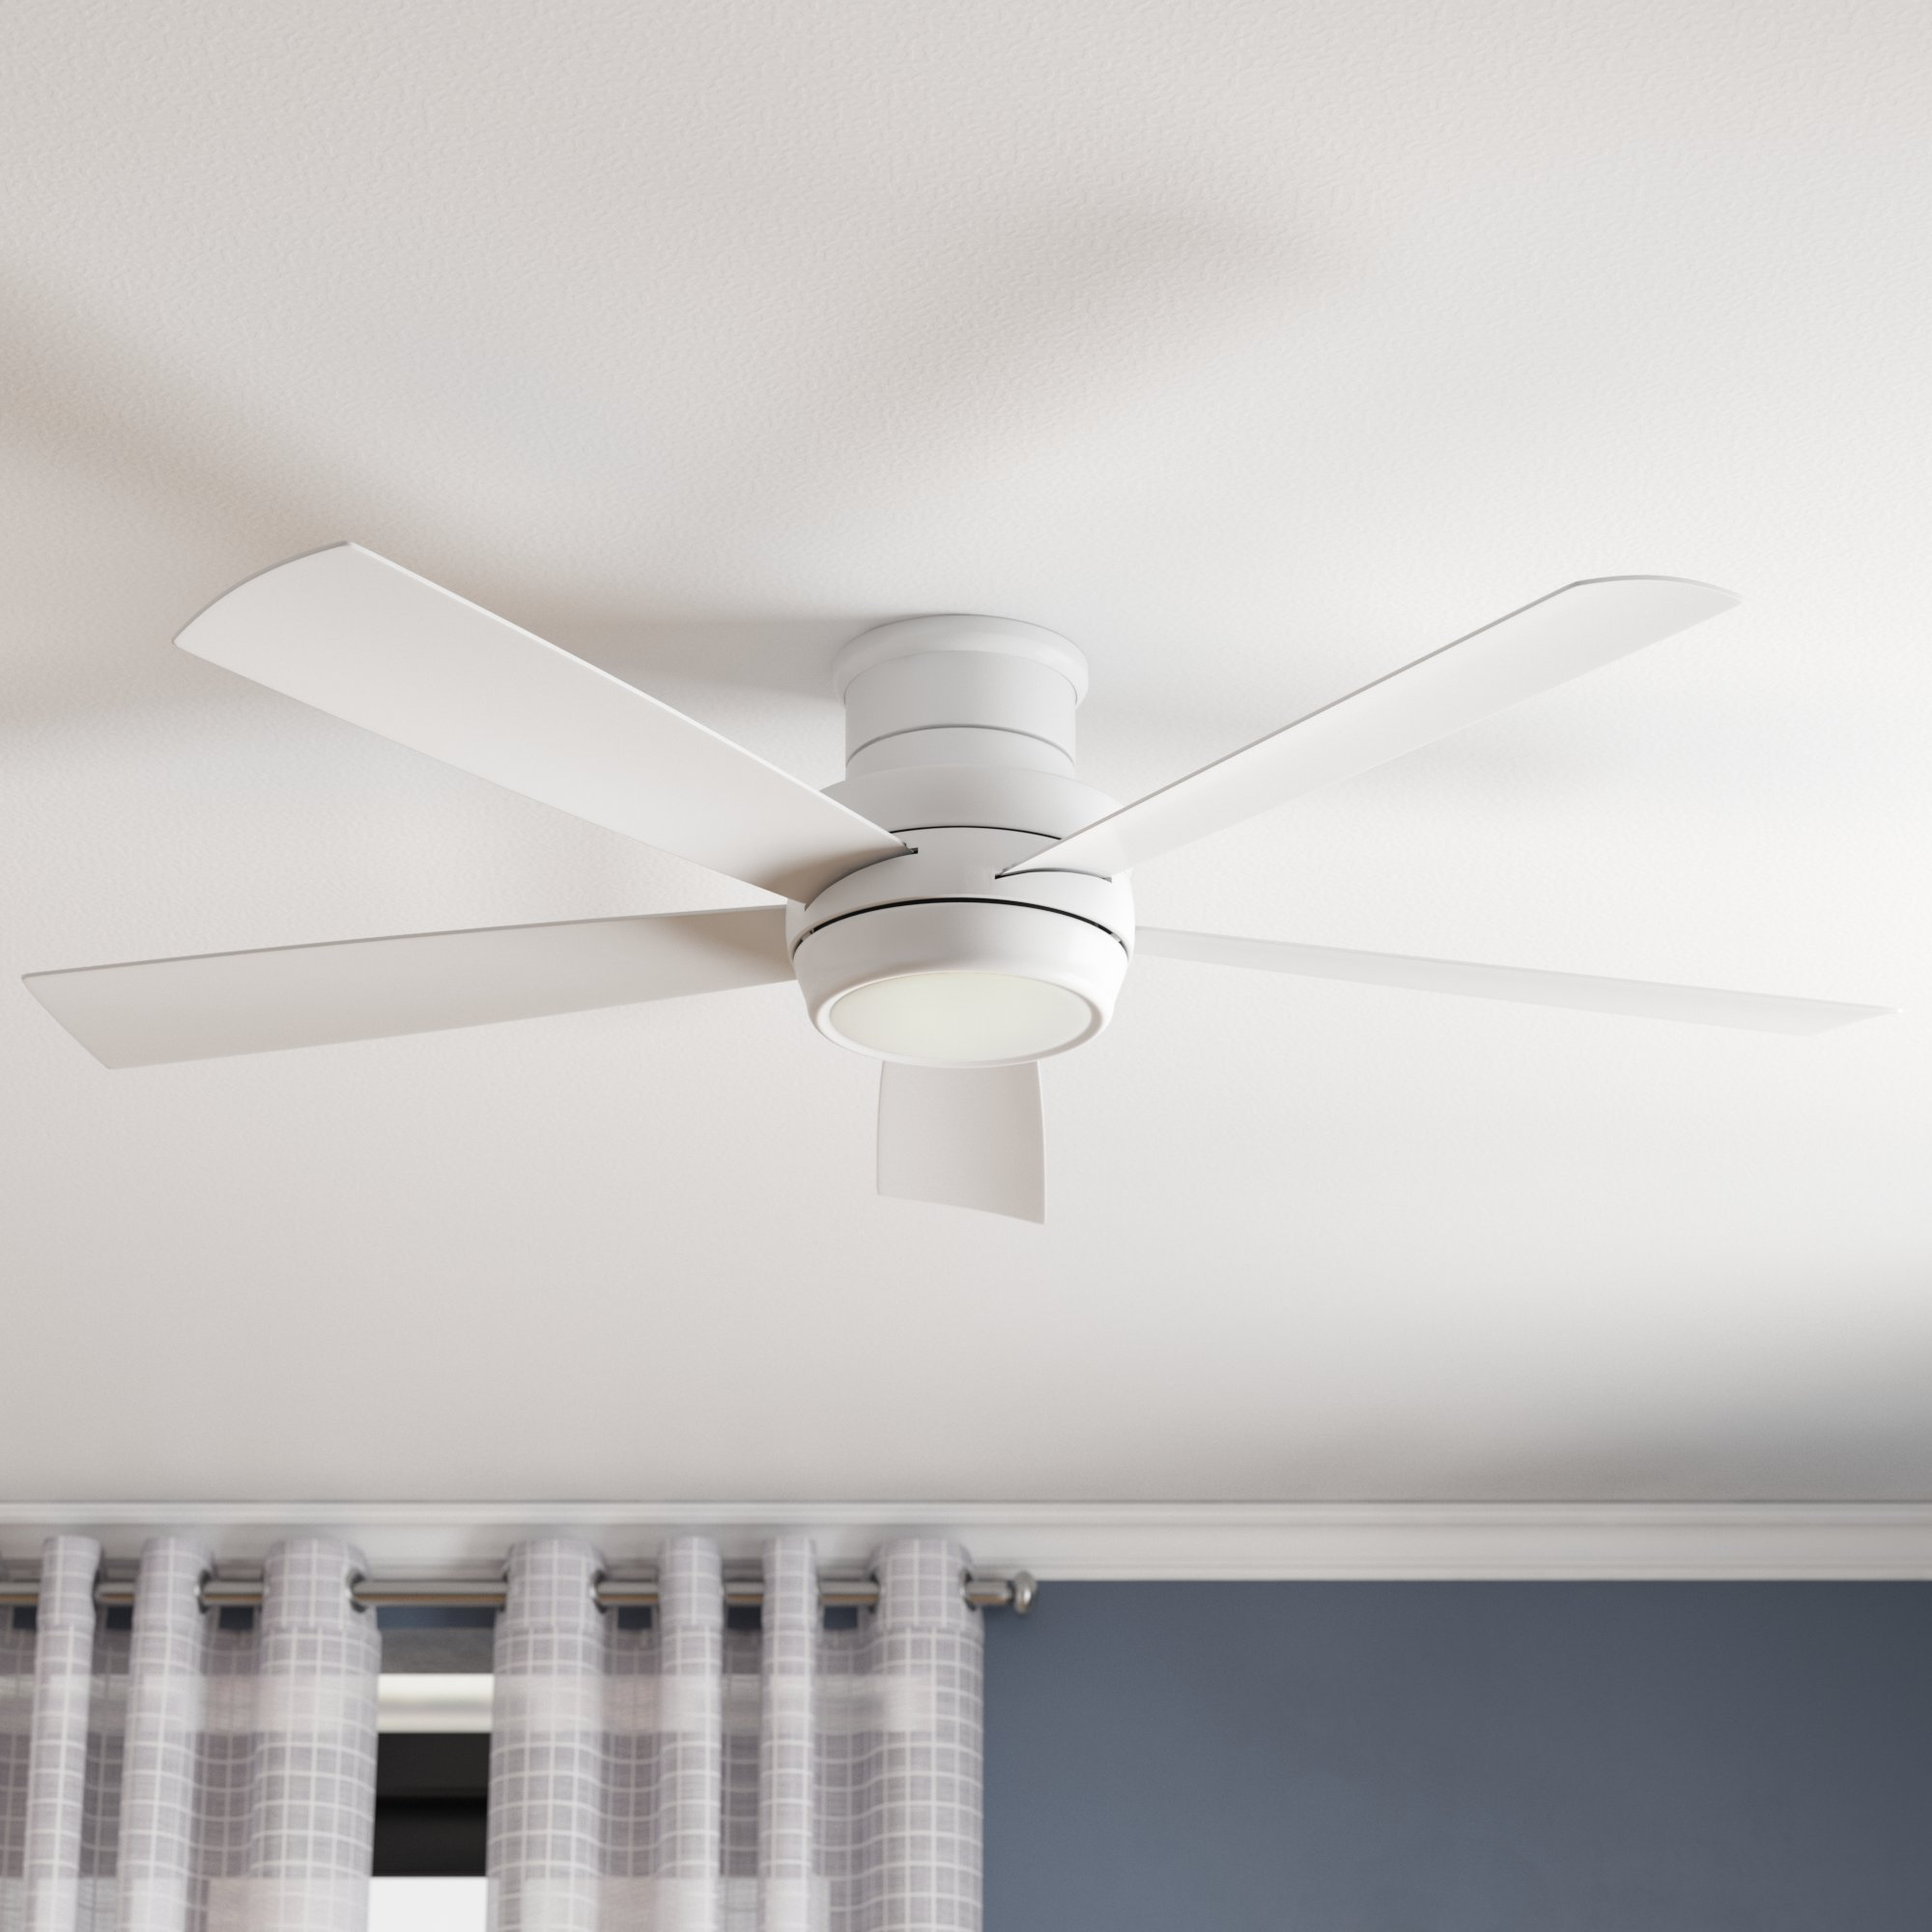 Cedarton 5 Blade Led Ceiling Fans Pertaining To Best And Newest Ceiling : Ceiling Cedarton Blade Led Fan With Remote Light (View 7 of 20)